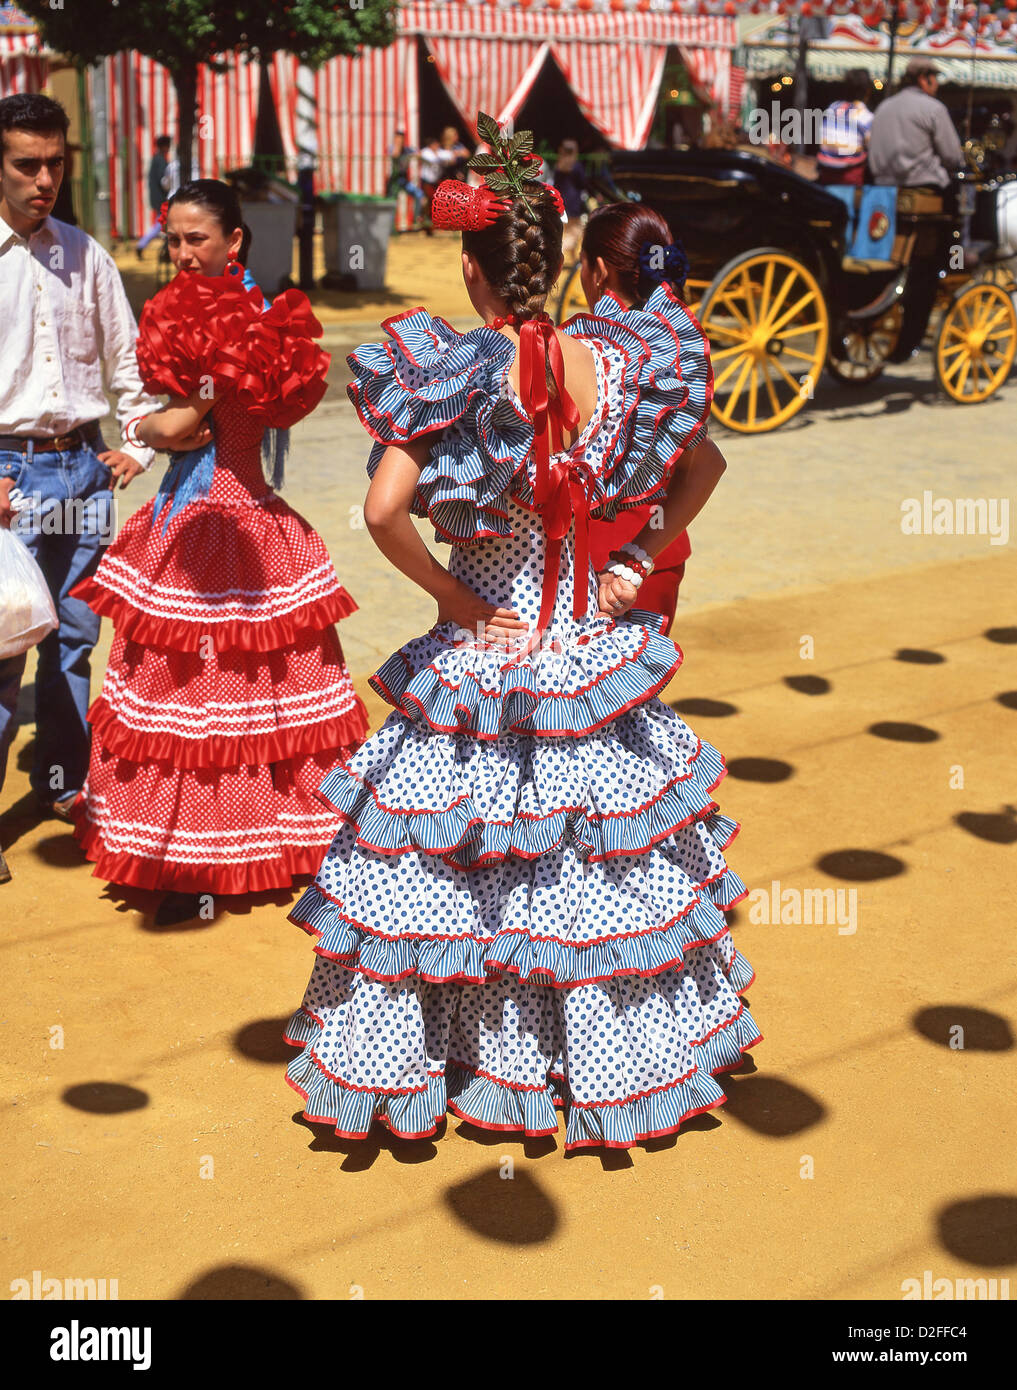 Young girls in flamenco dresses at feria de abril de for Espectaculo flamenco seville sevilla